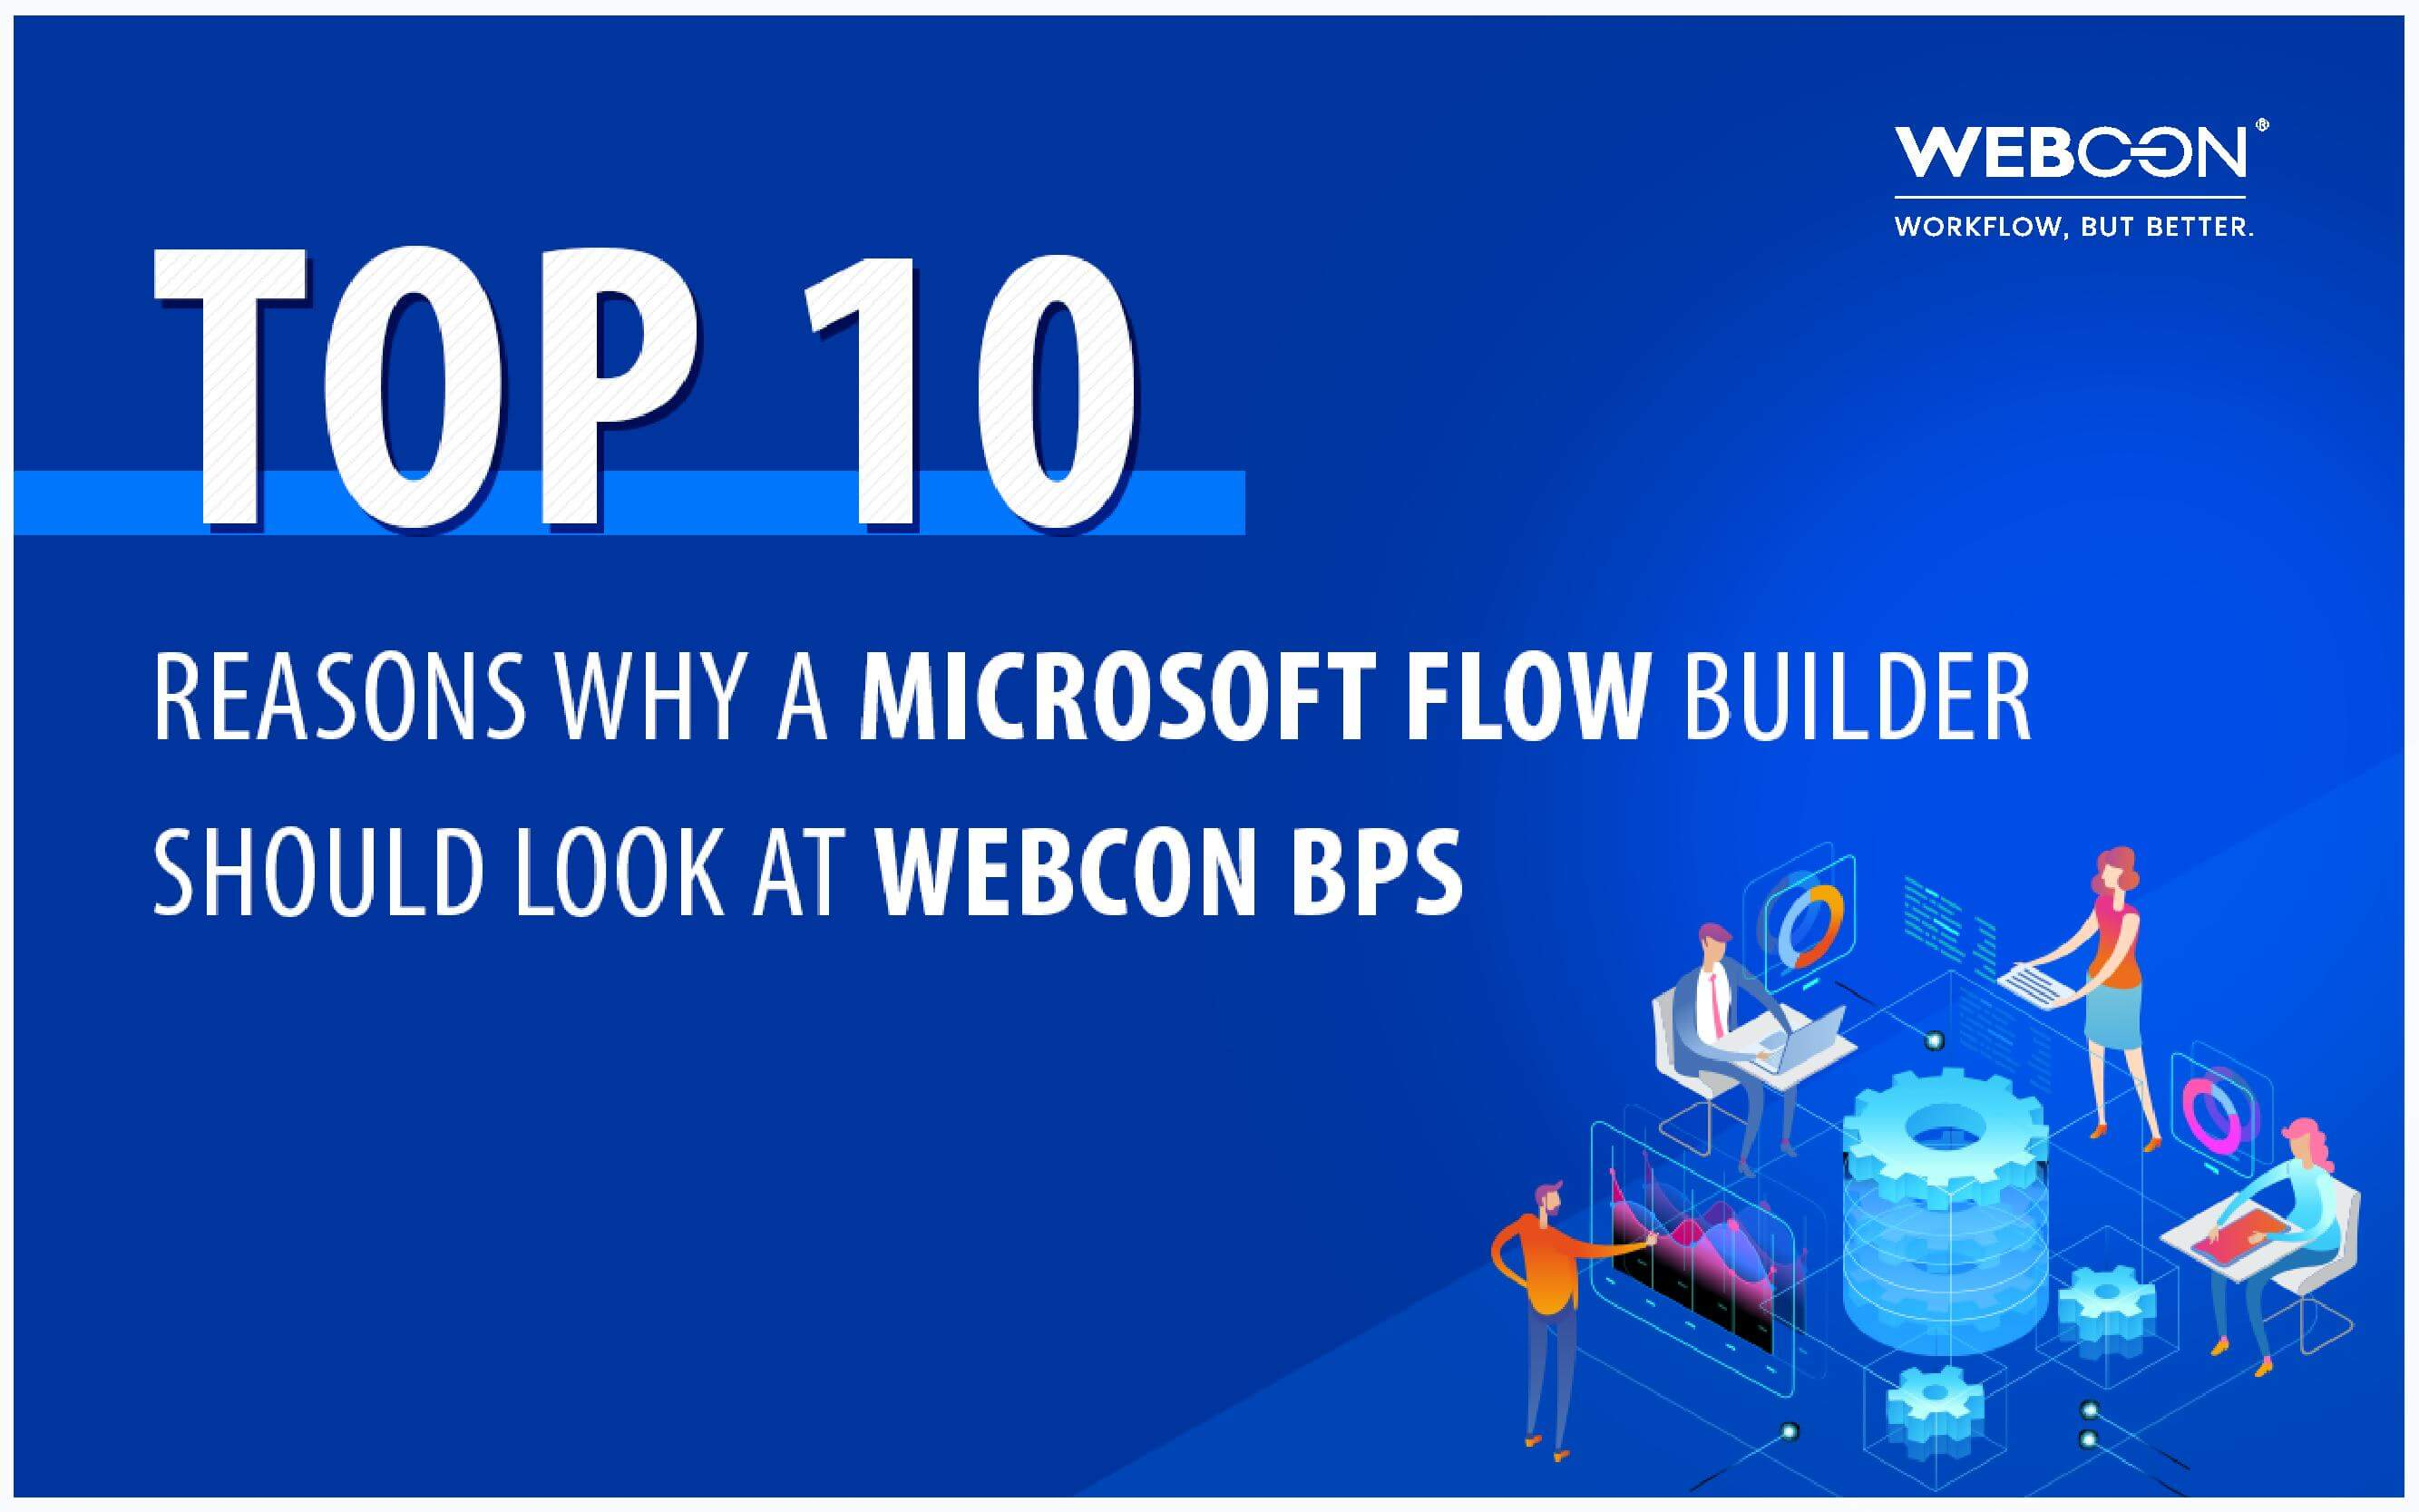 WEBCON whitepaper cover - Why MS Flow Builder Should Look at WEBCON BPS